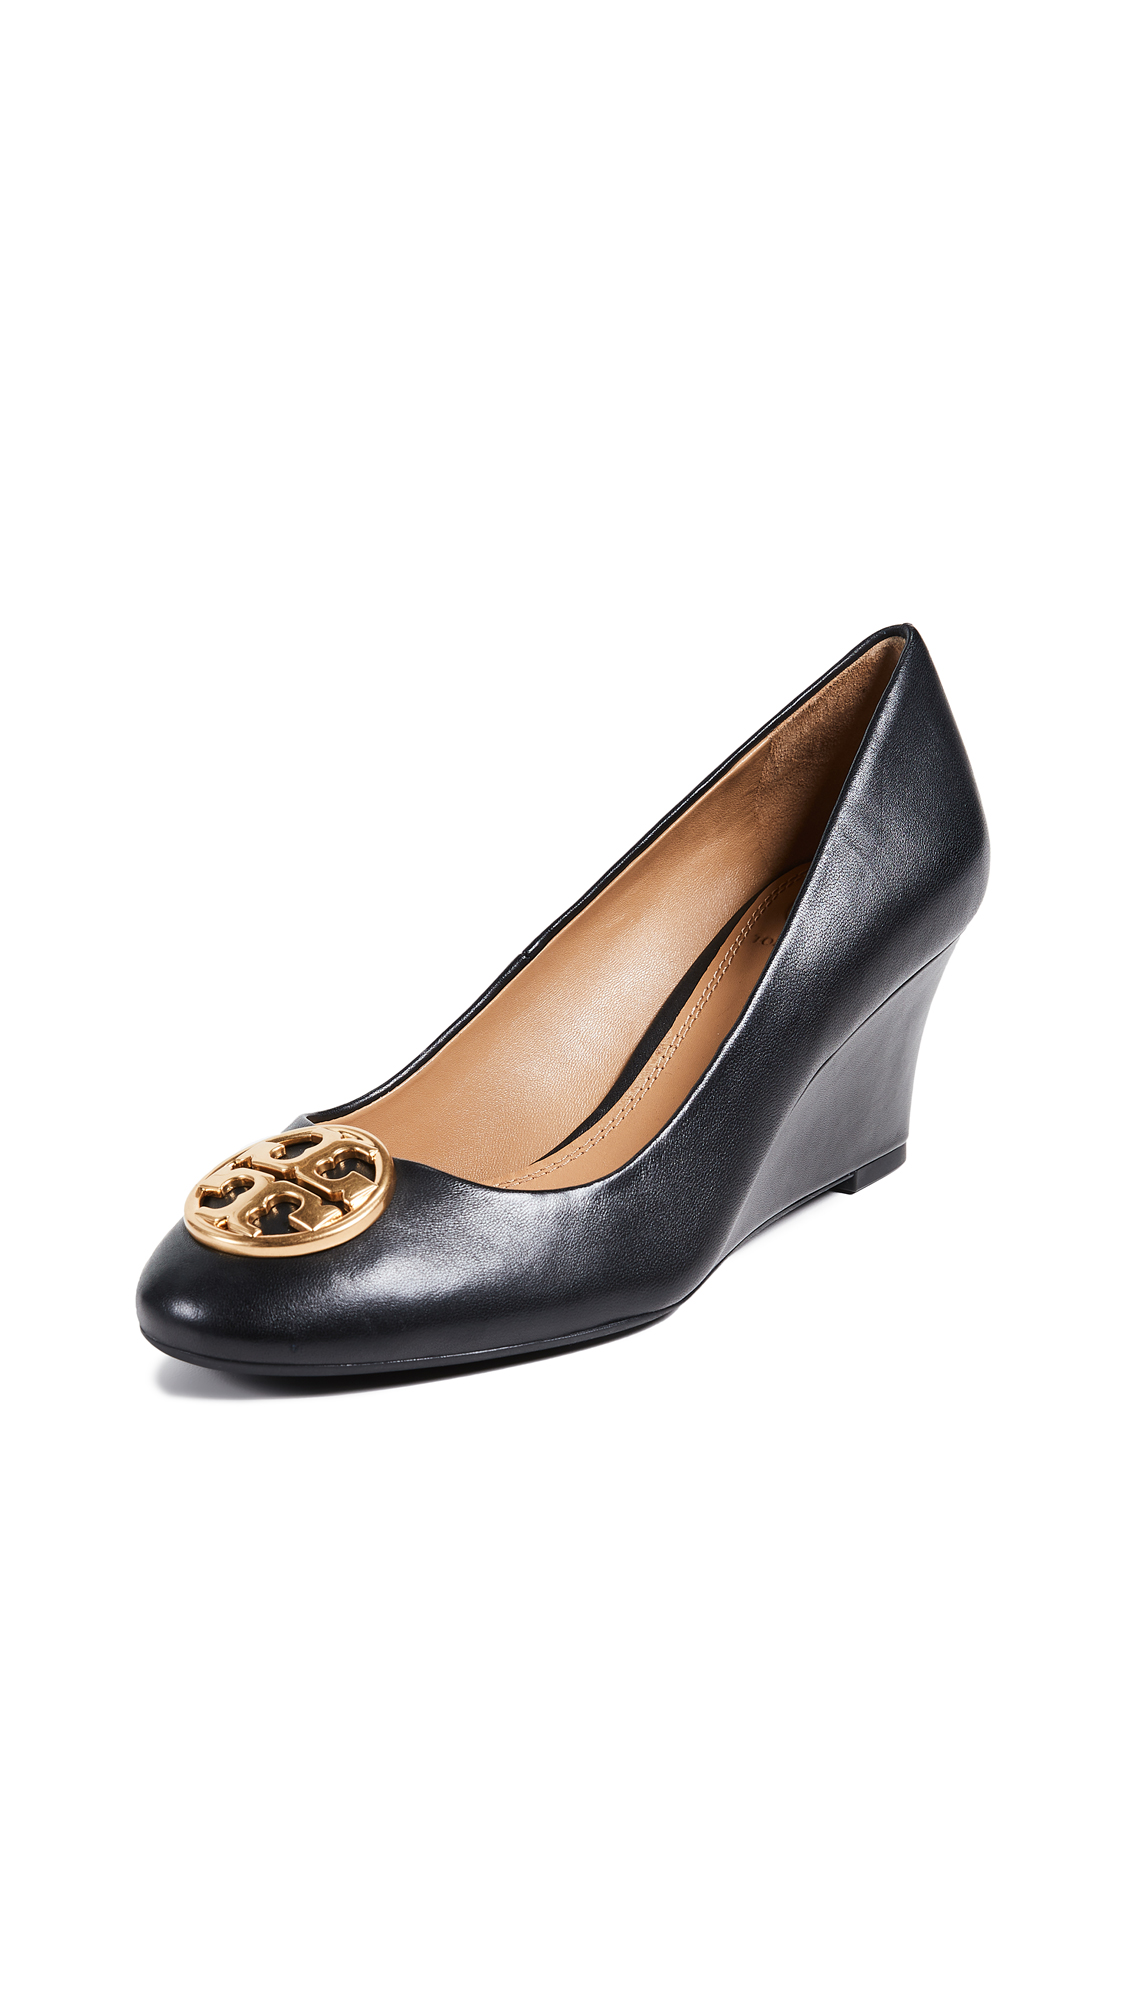 Tory Burch Chelsea 65mm Wedge Pumps - Perfect Black